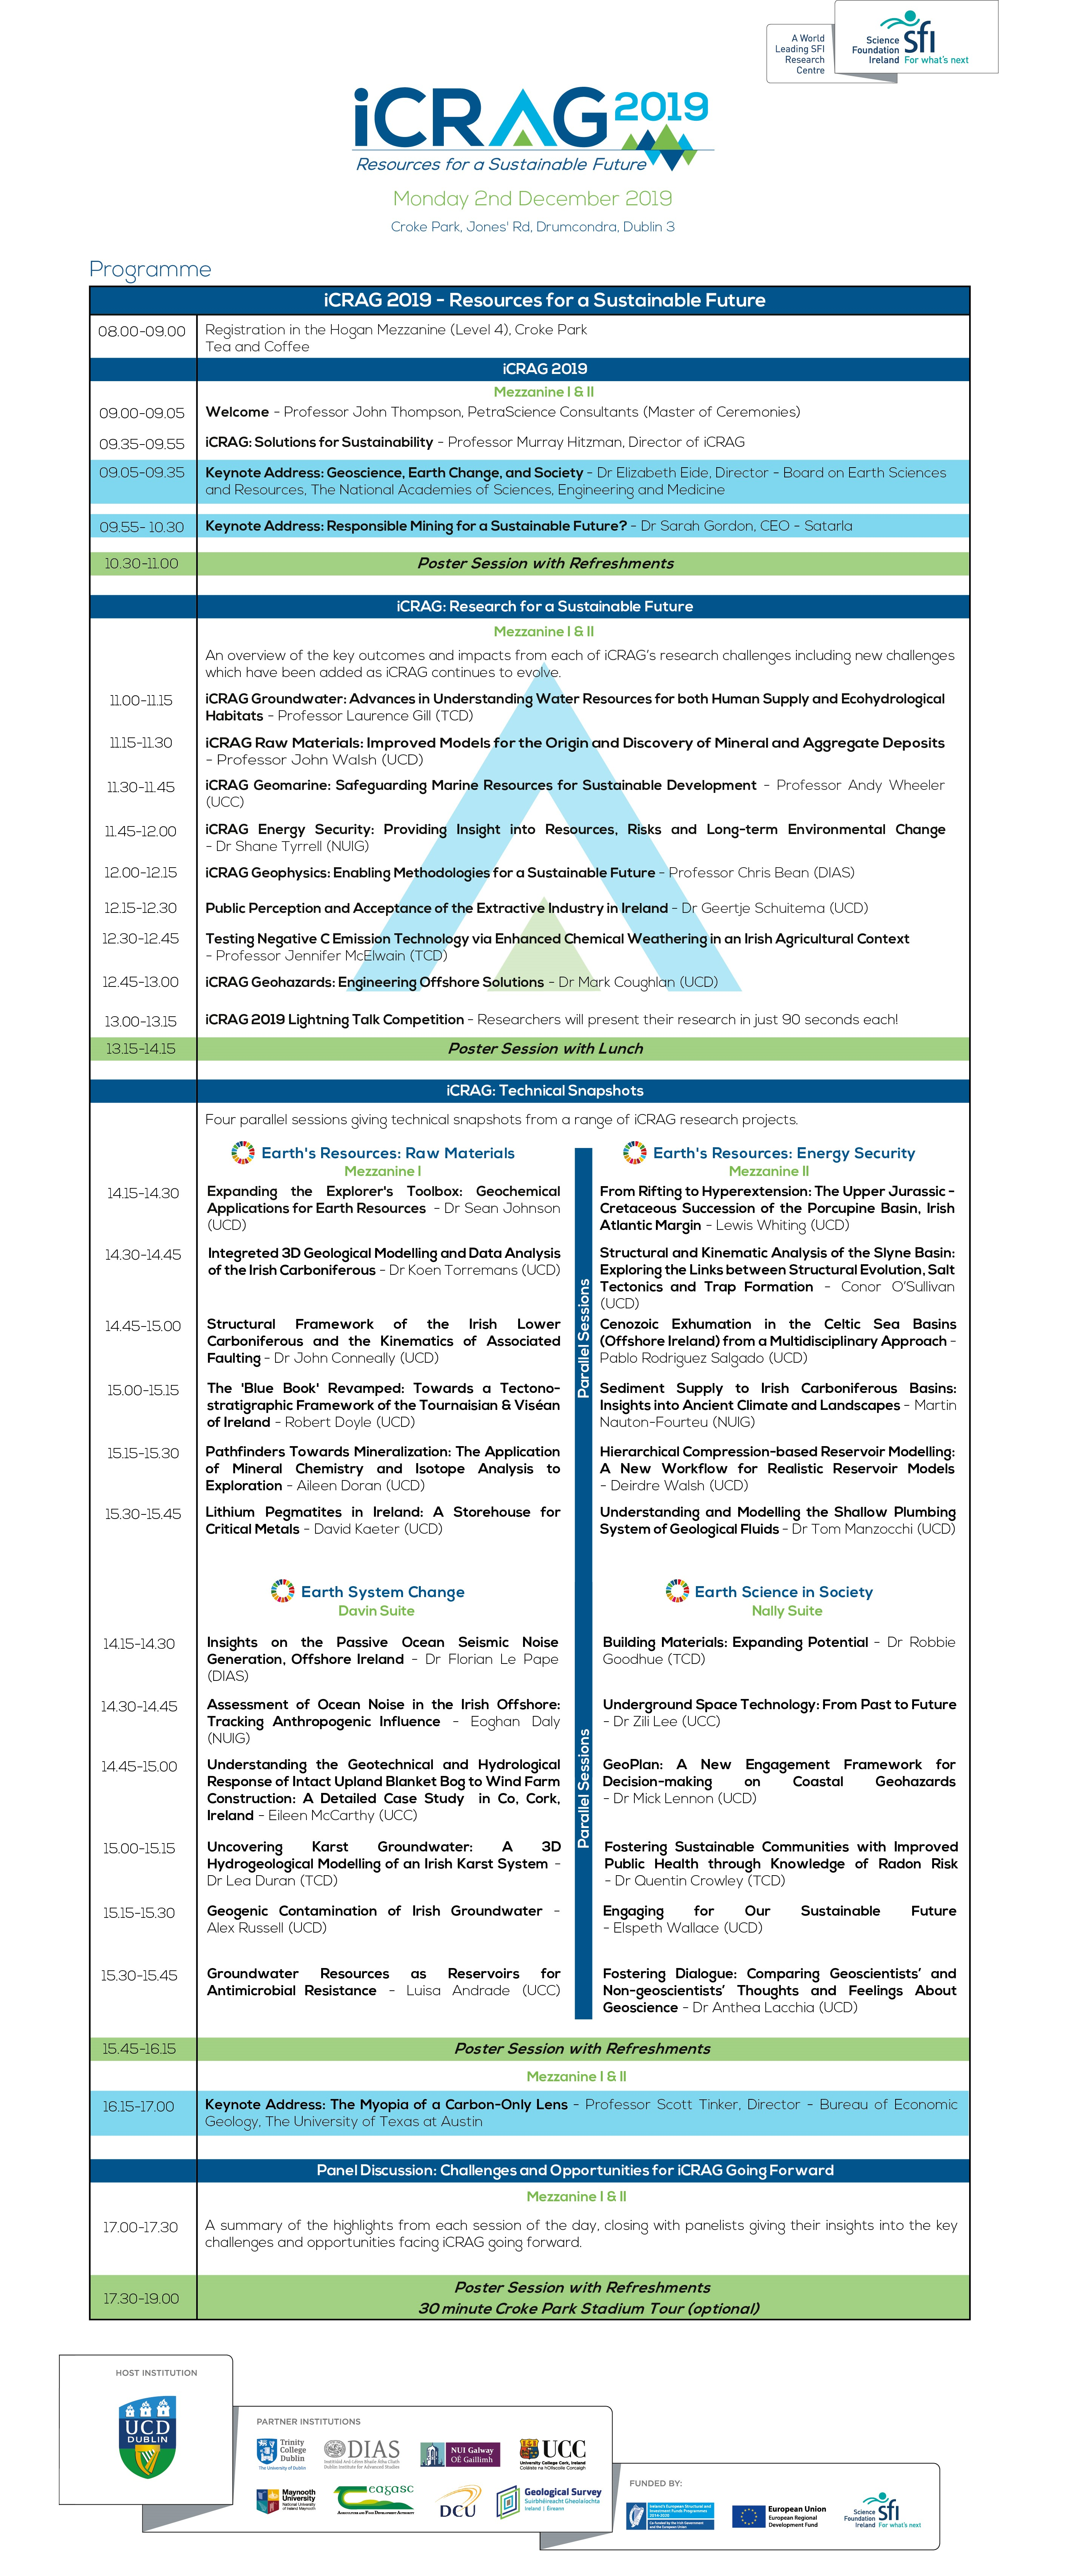 Conference programme image